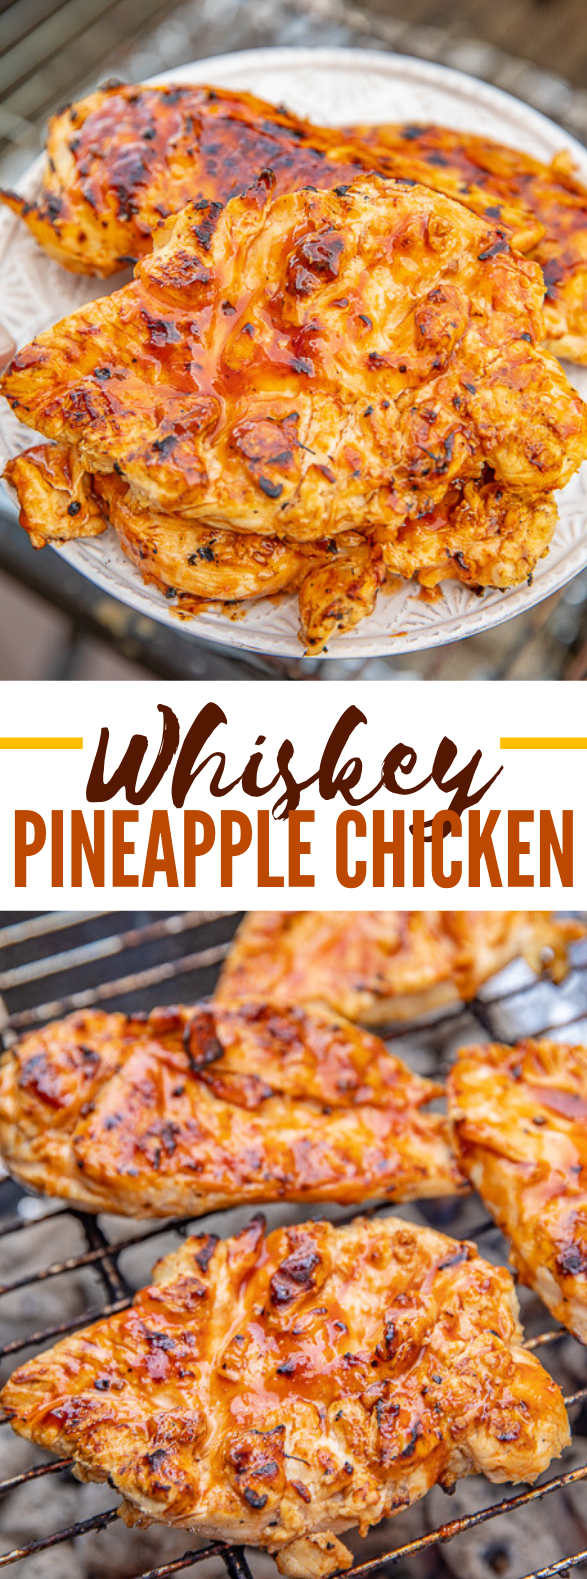 WHISKEY PINEAPPLE CHICKEN #dinner #grilled